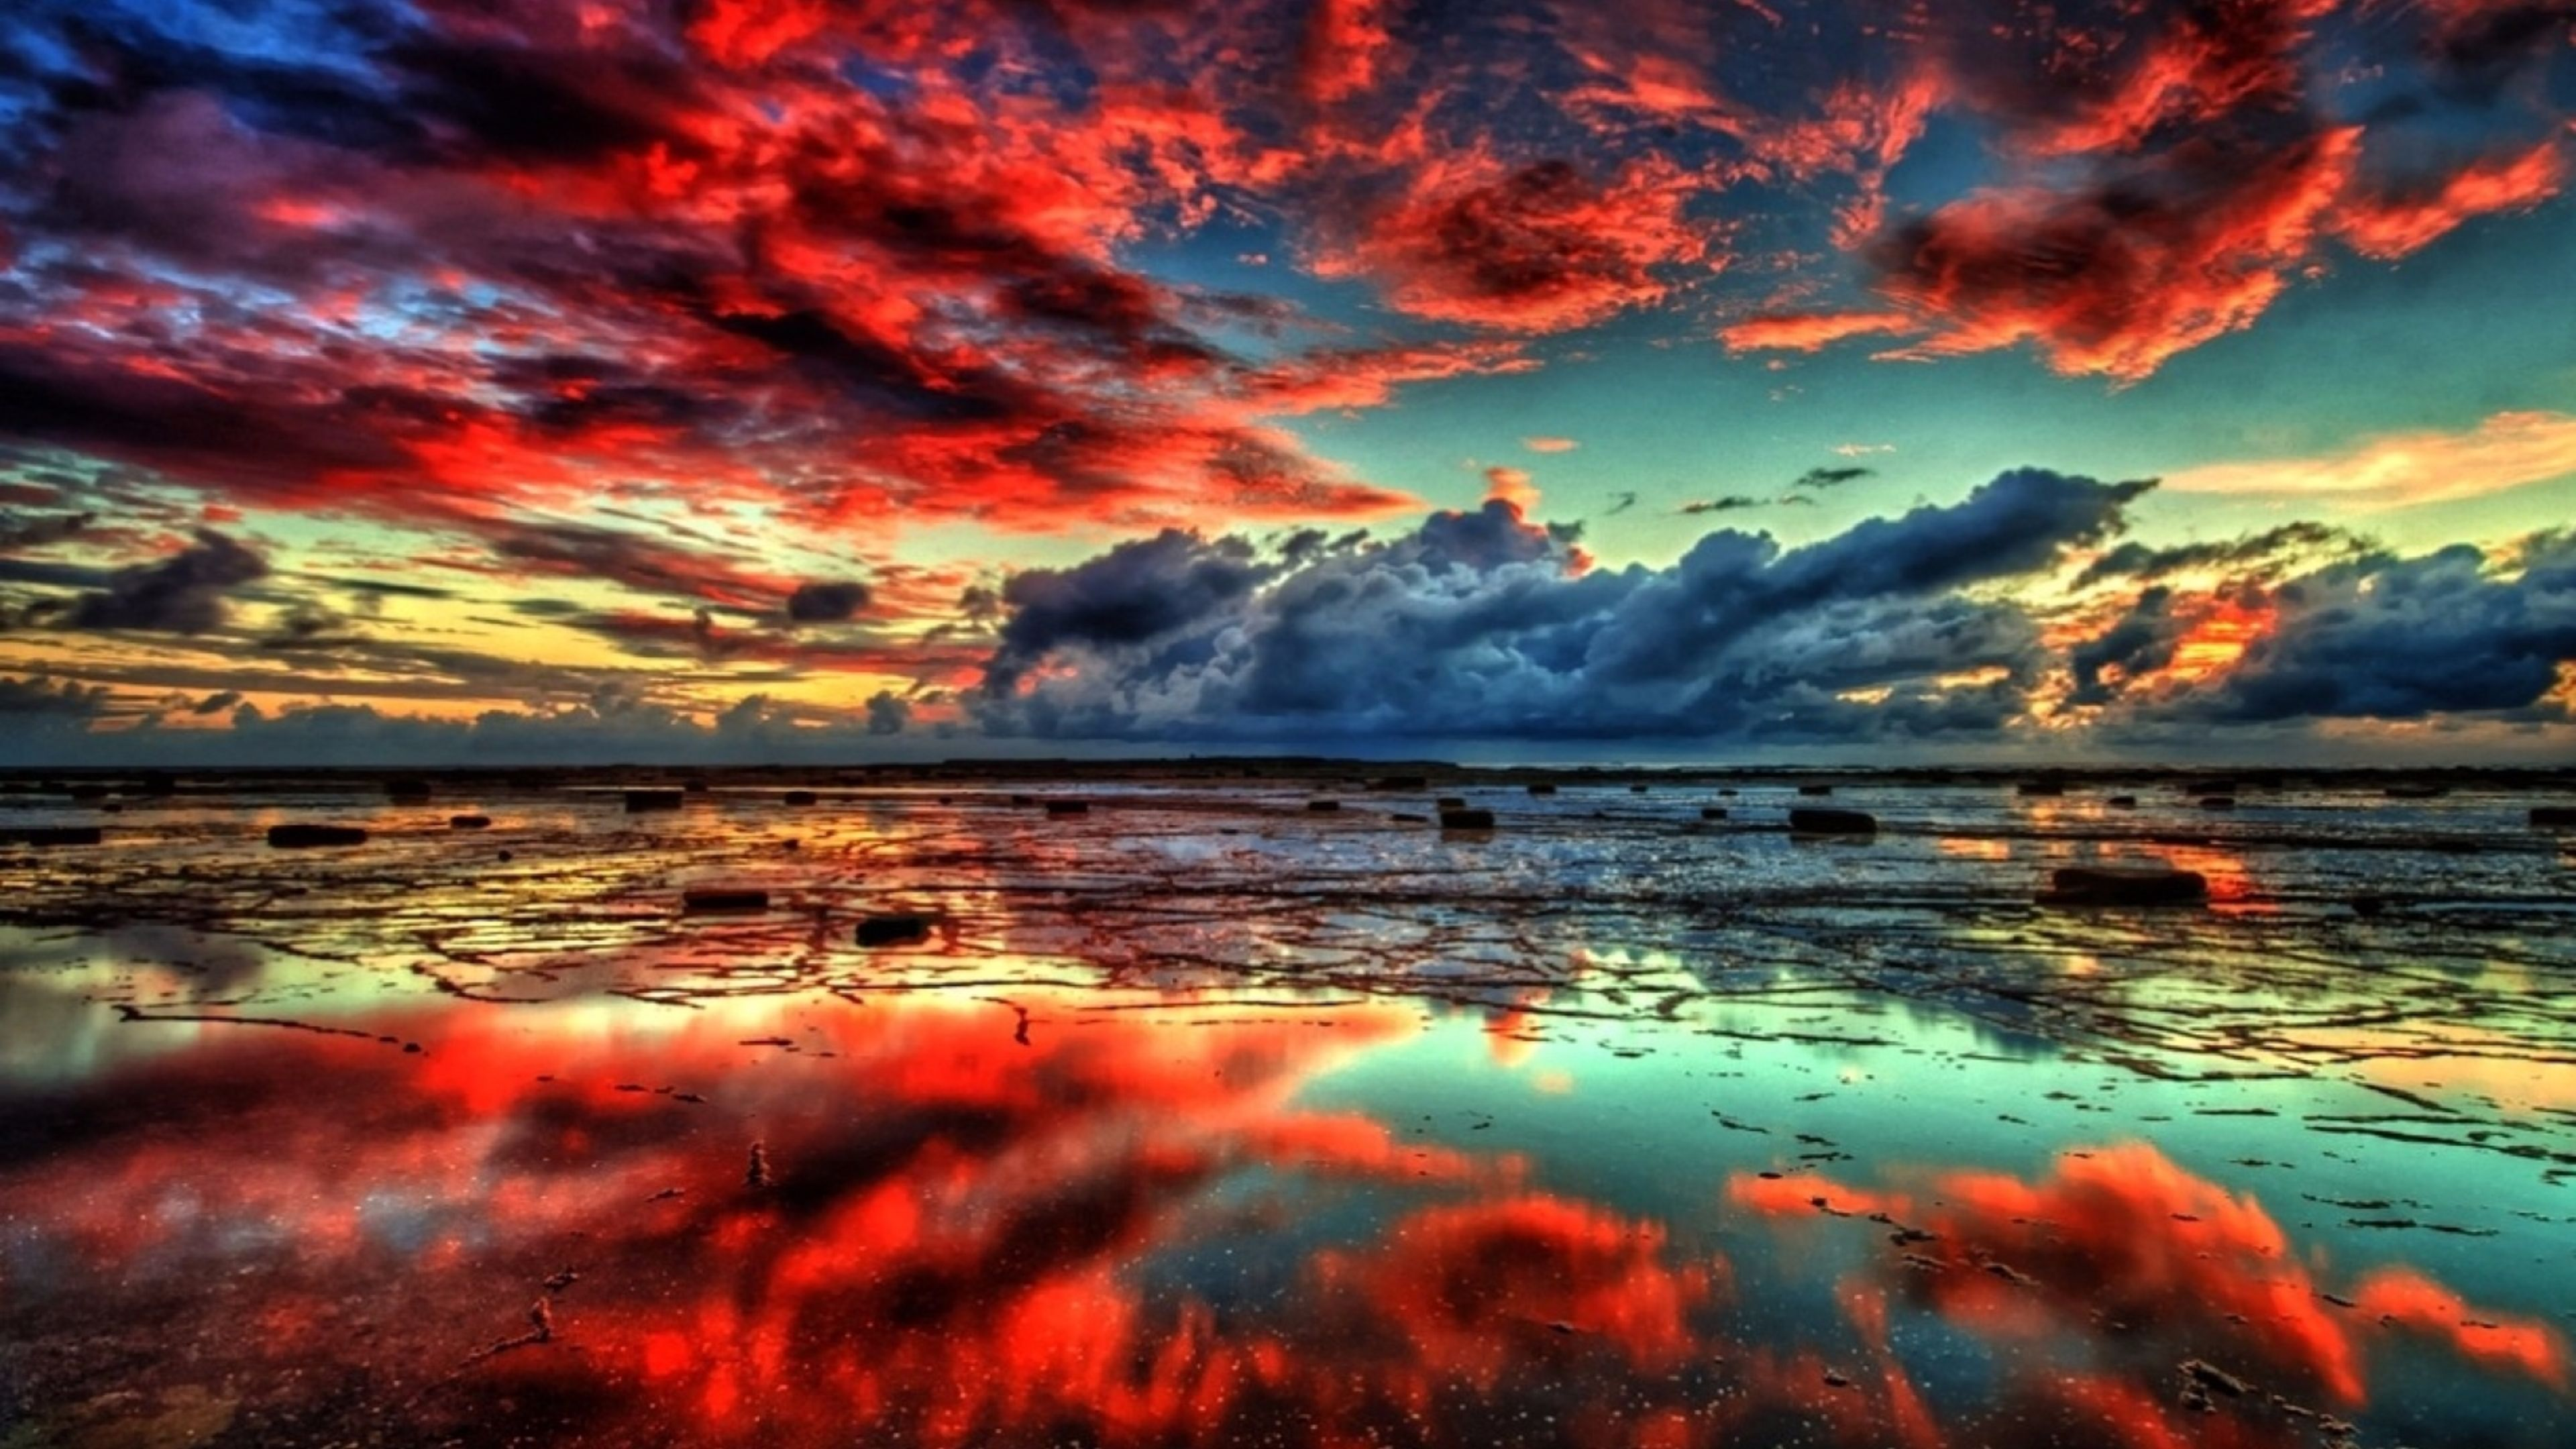 Red Clouds Nature 4K Wallpapers UHD, hd walepaper, free wallpaper